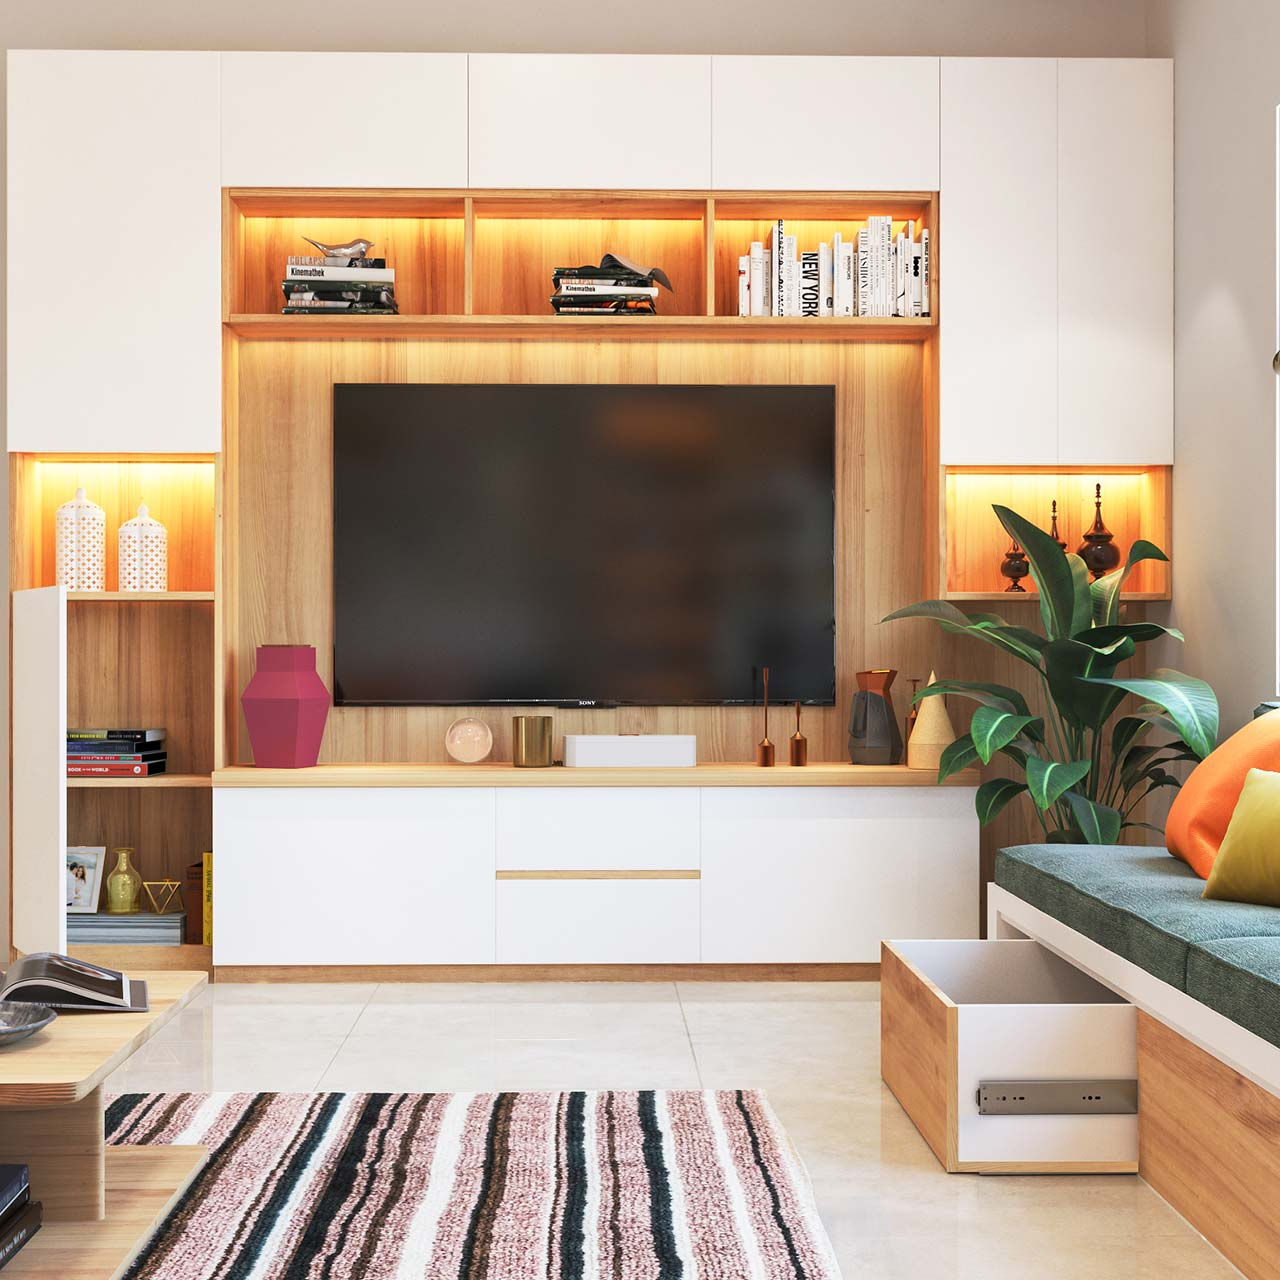 Living Area Cabinet Design: Best TV Cabinet Design Ideas For Living Room